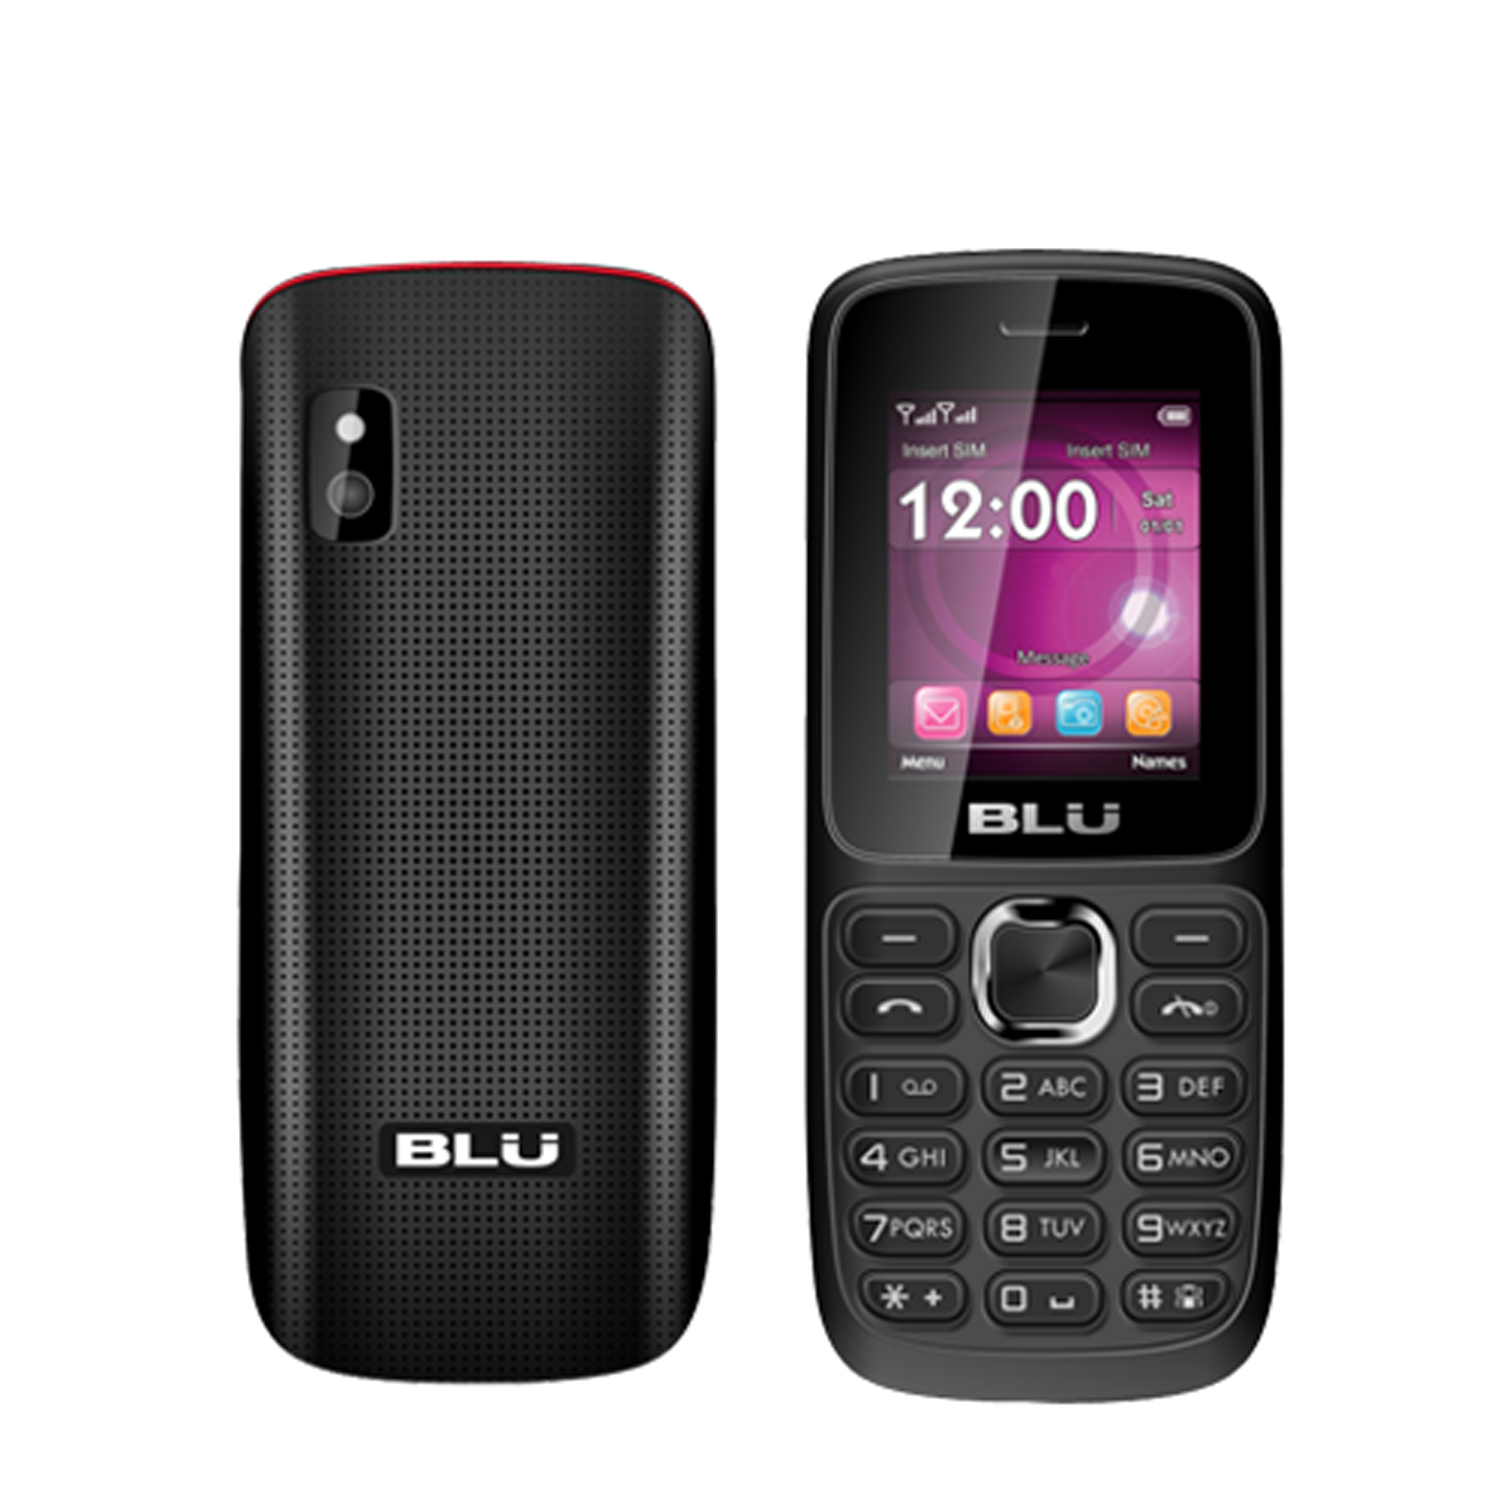 BLU Aria T174 Black Red Unlocked GSM Dual SIM QuadBand Bar Cell Phone